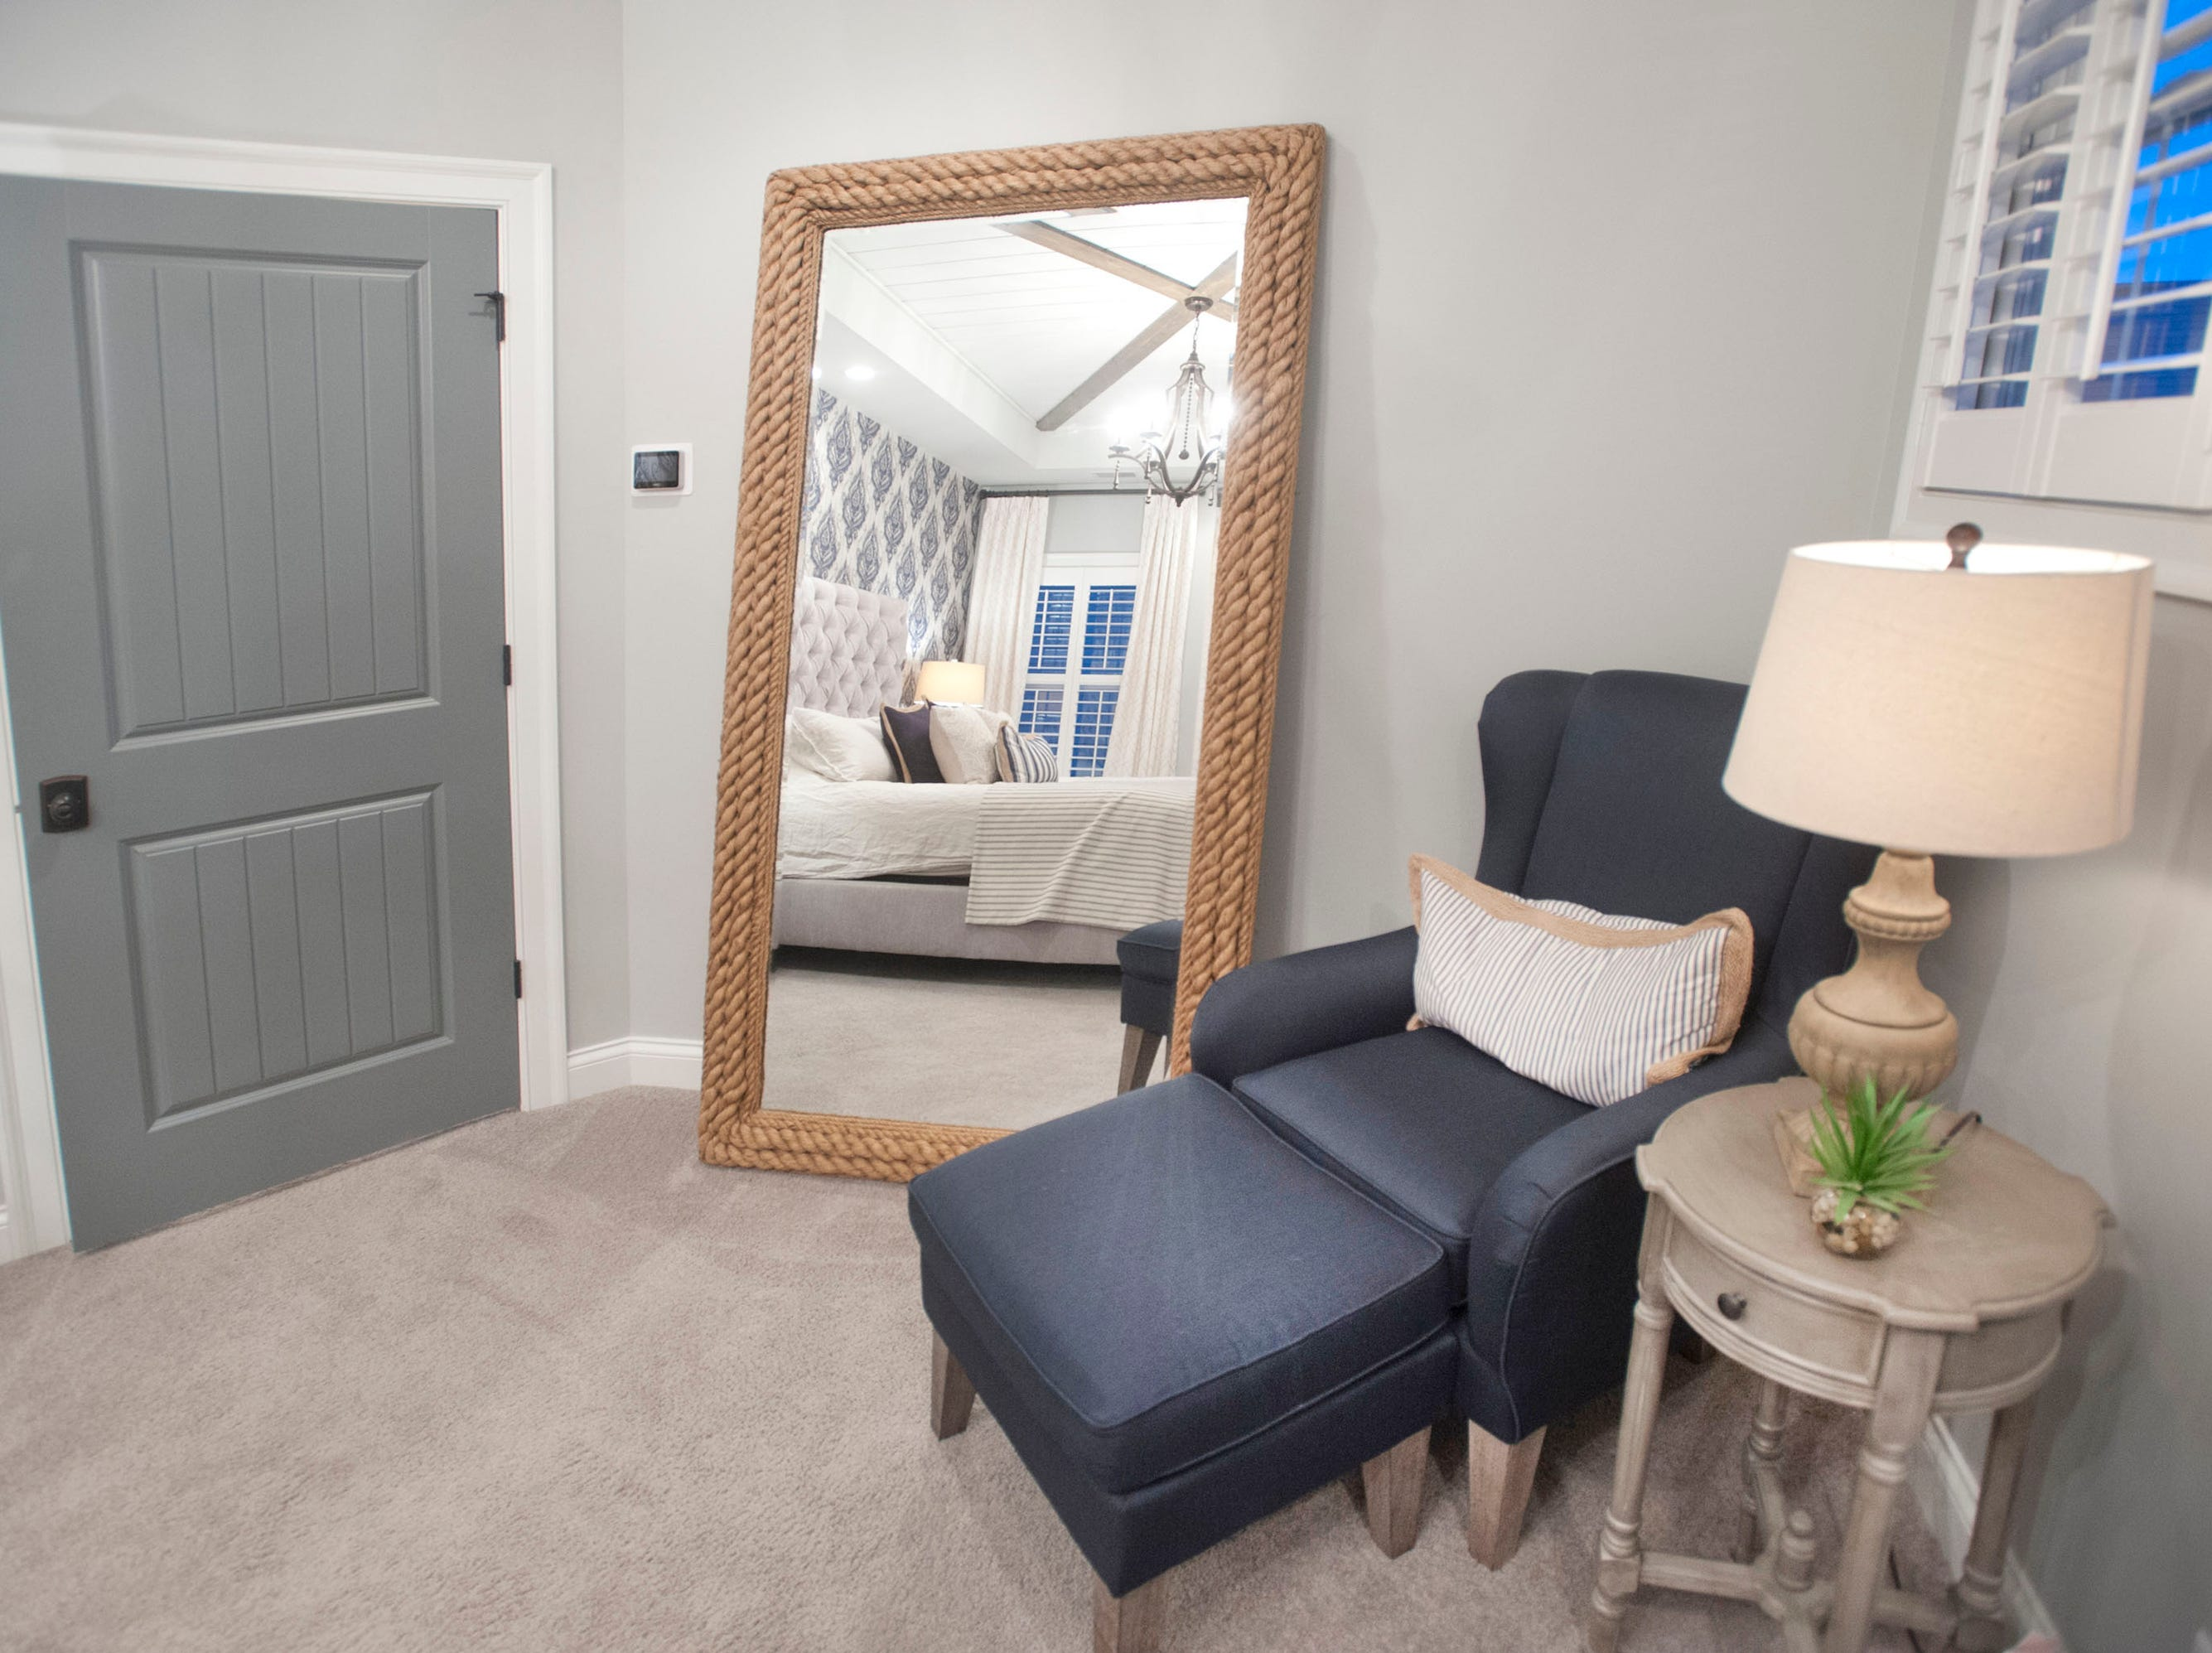 The Hannah master bedroom on the 2nd floor.01 March 2019